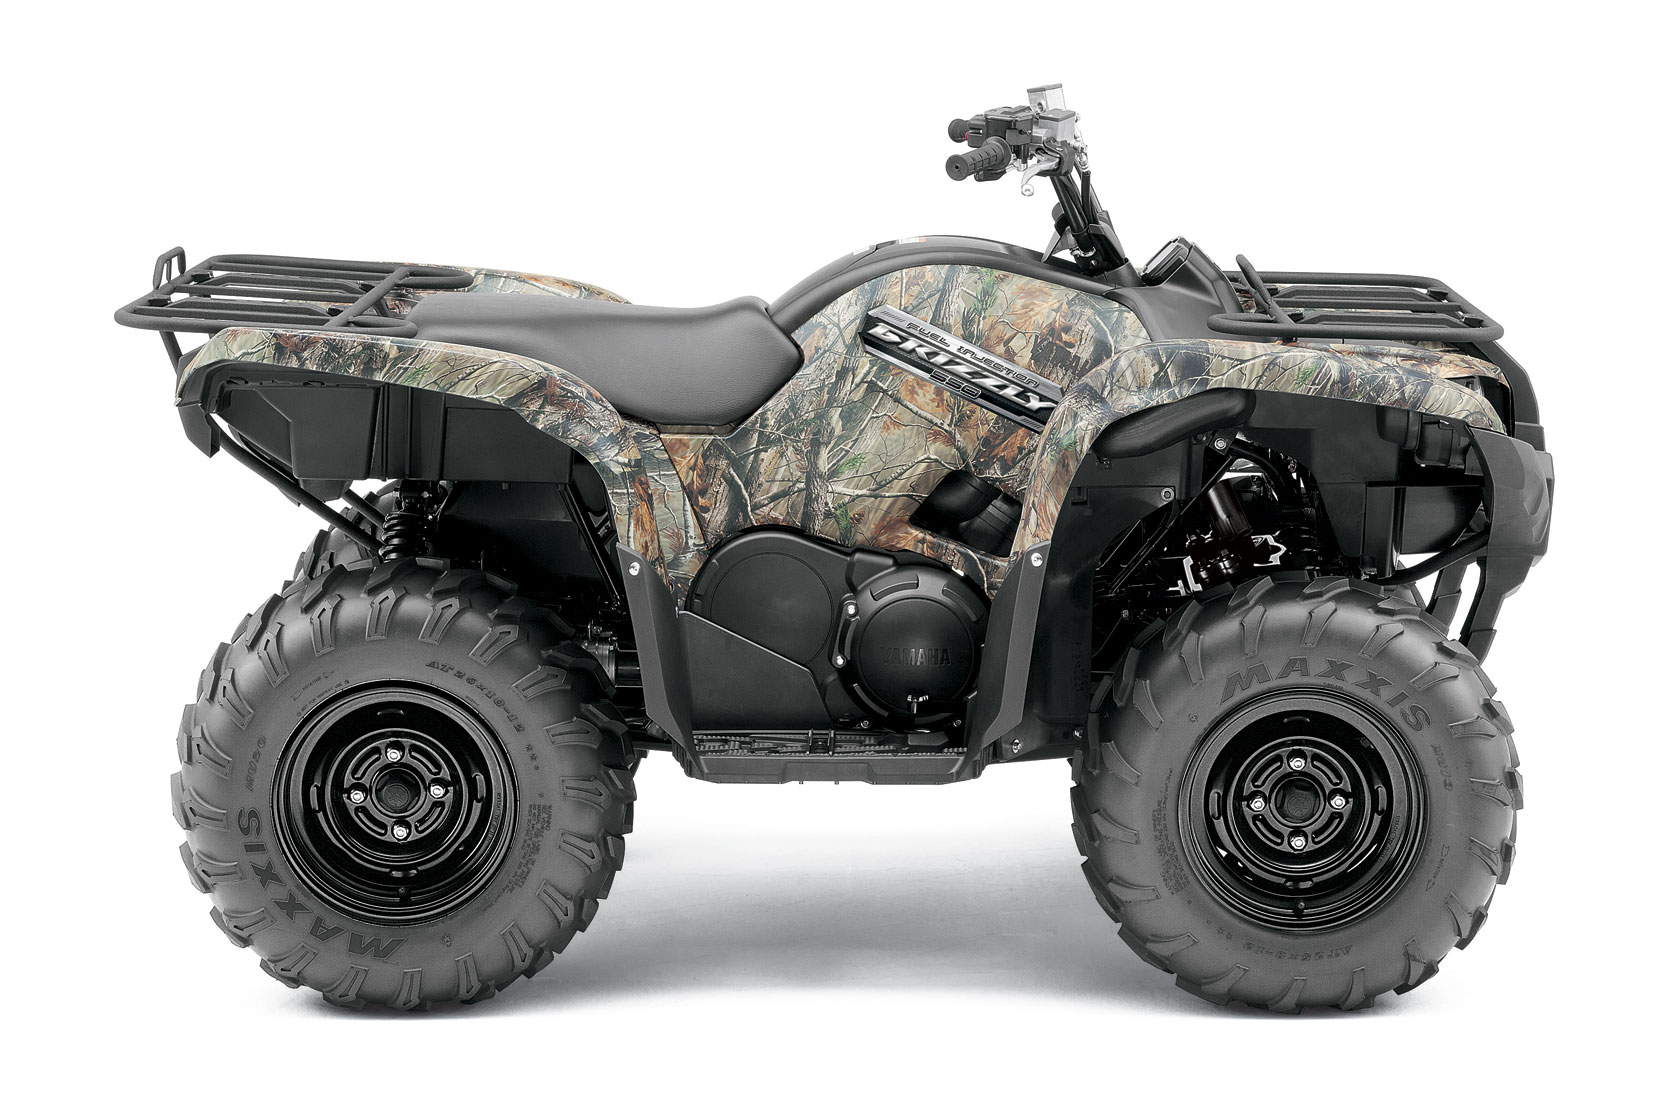 2012 Yamaha Grizzly 550 FI Auto 4x4 Review